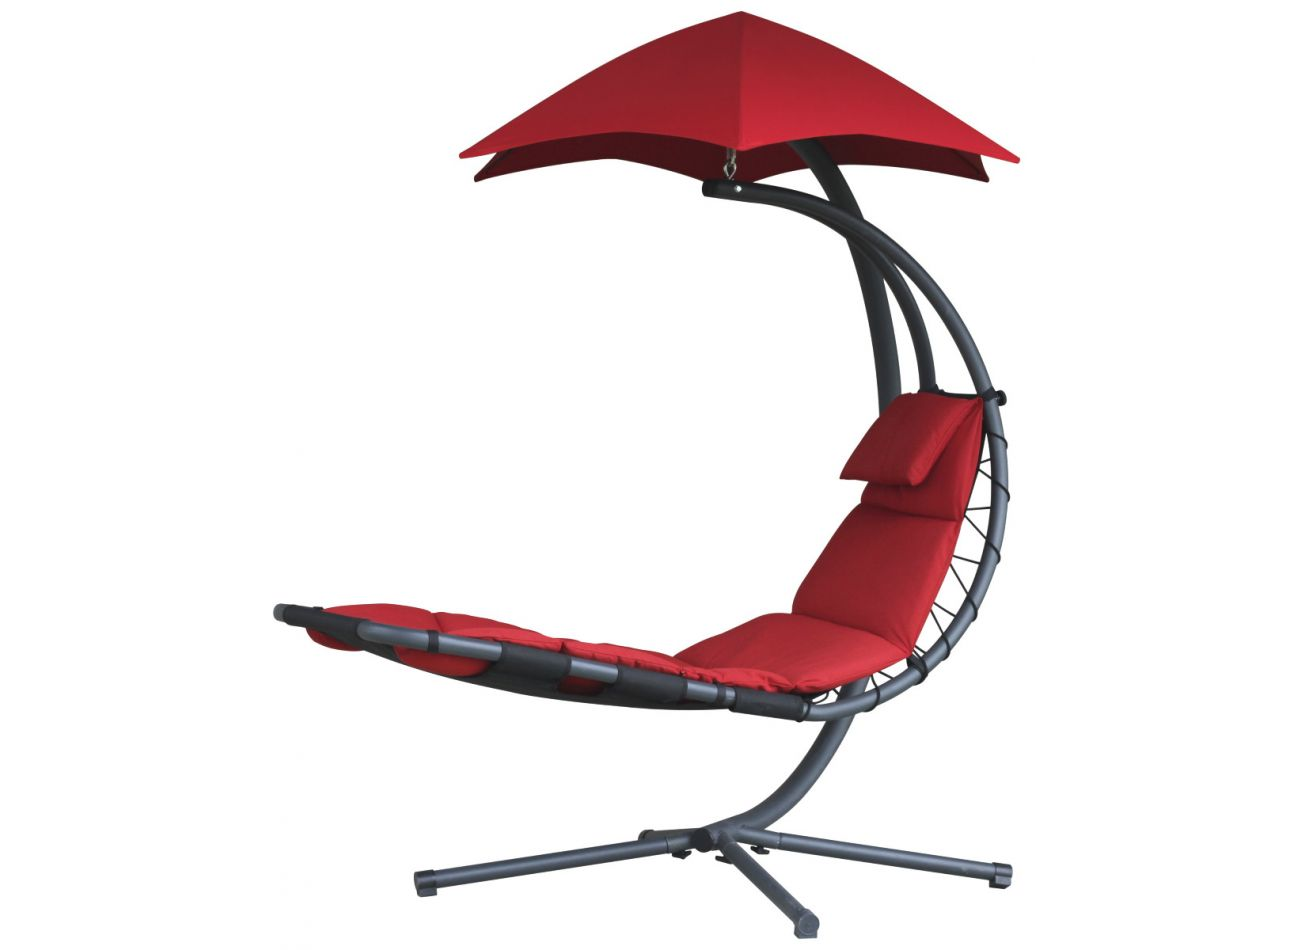 Original 1 Person Dream Chair Red